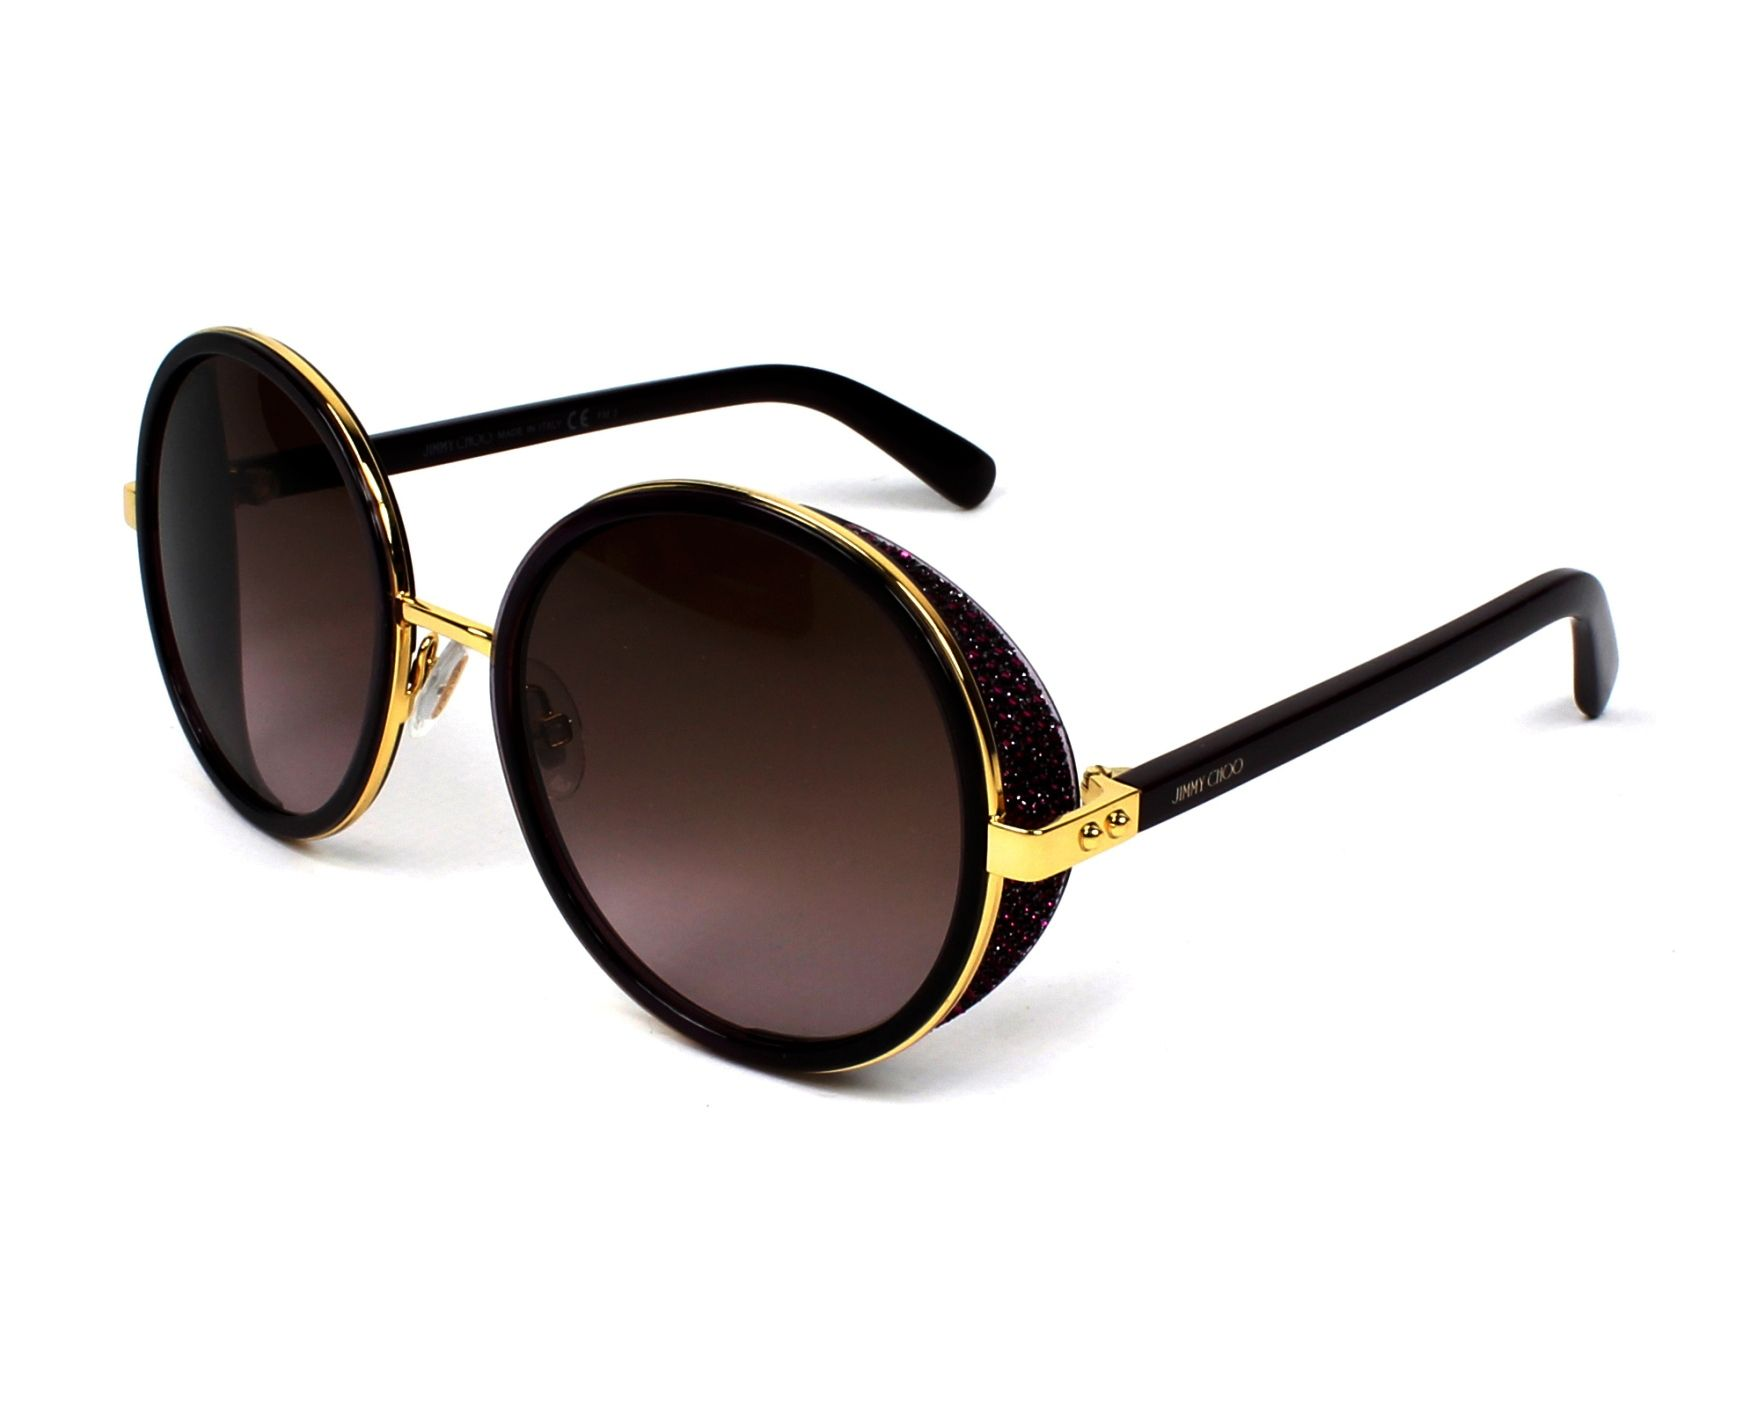 02ec64d1ece2 Sunglasses Jimmy Choo ANDIE-N-S 1KJ/V6 54-21 Purple Gold profile view